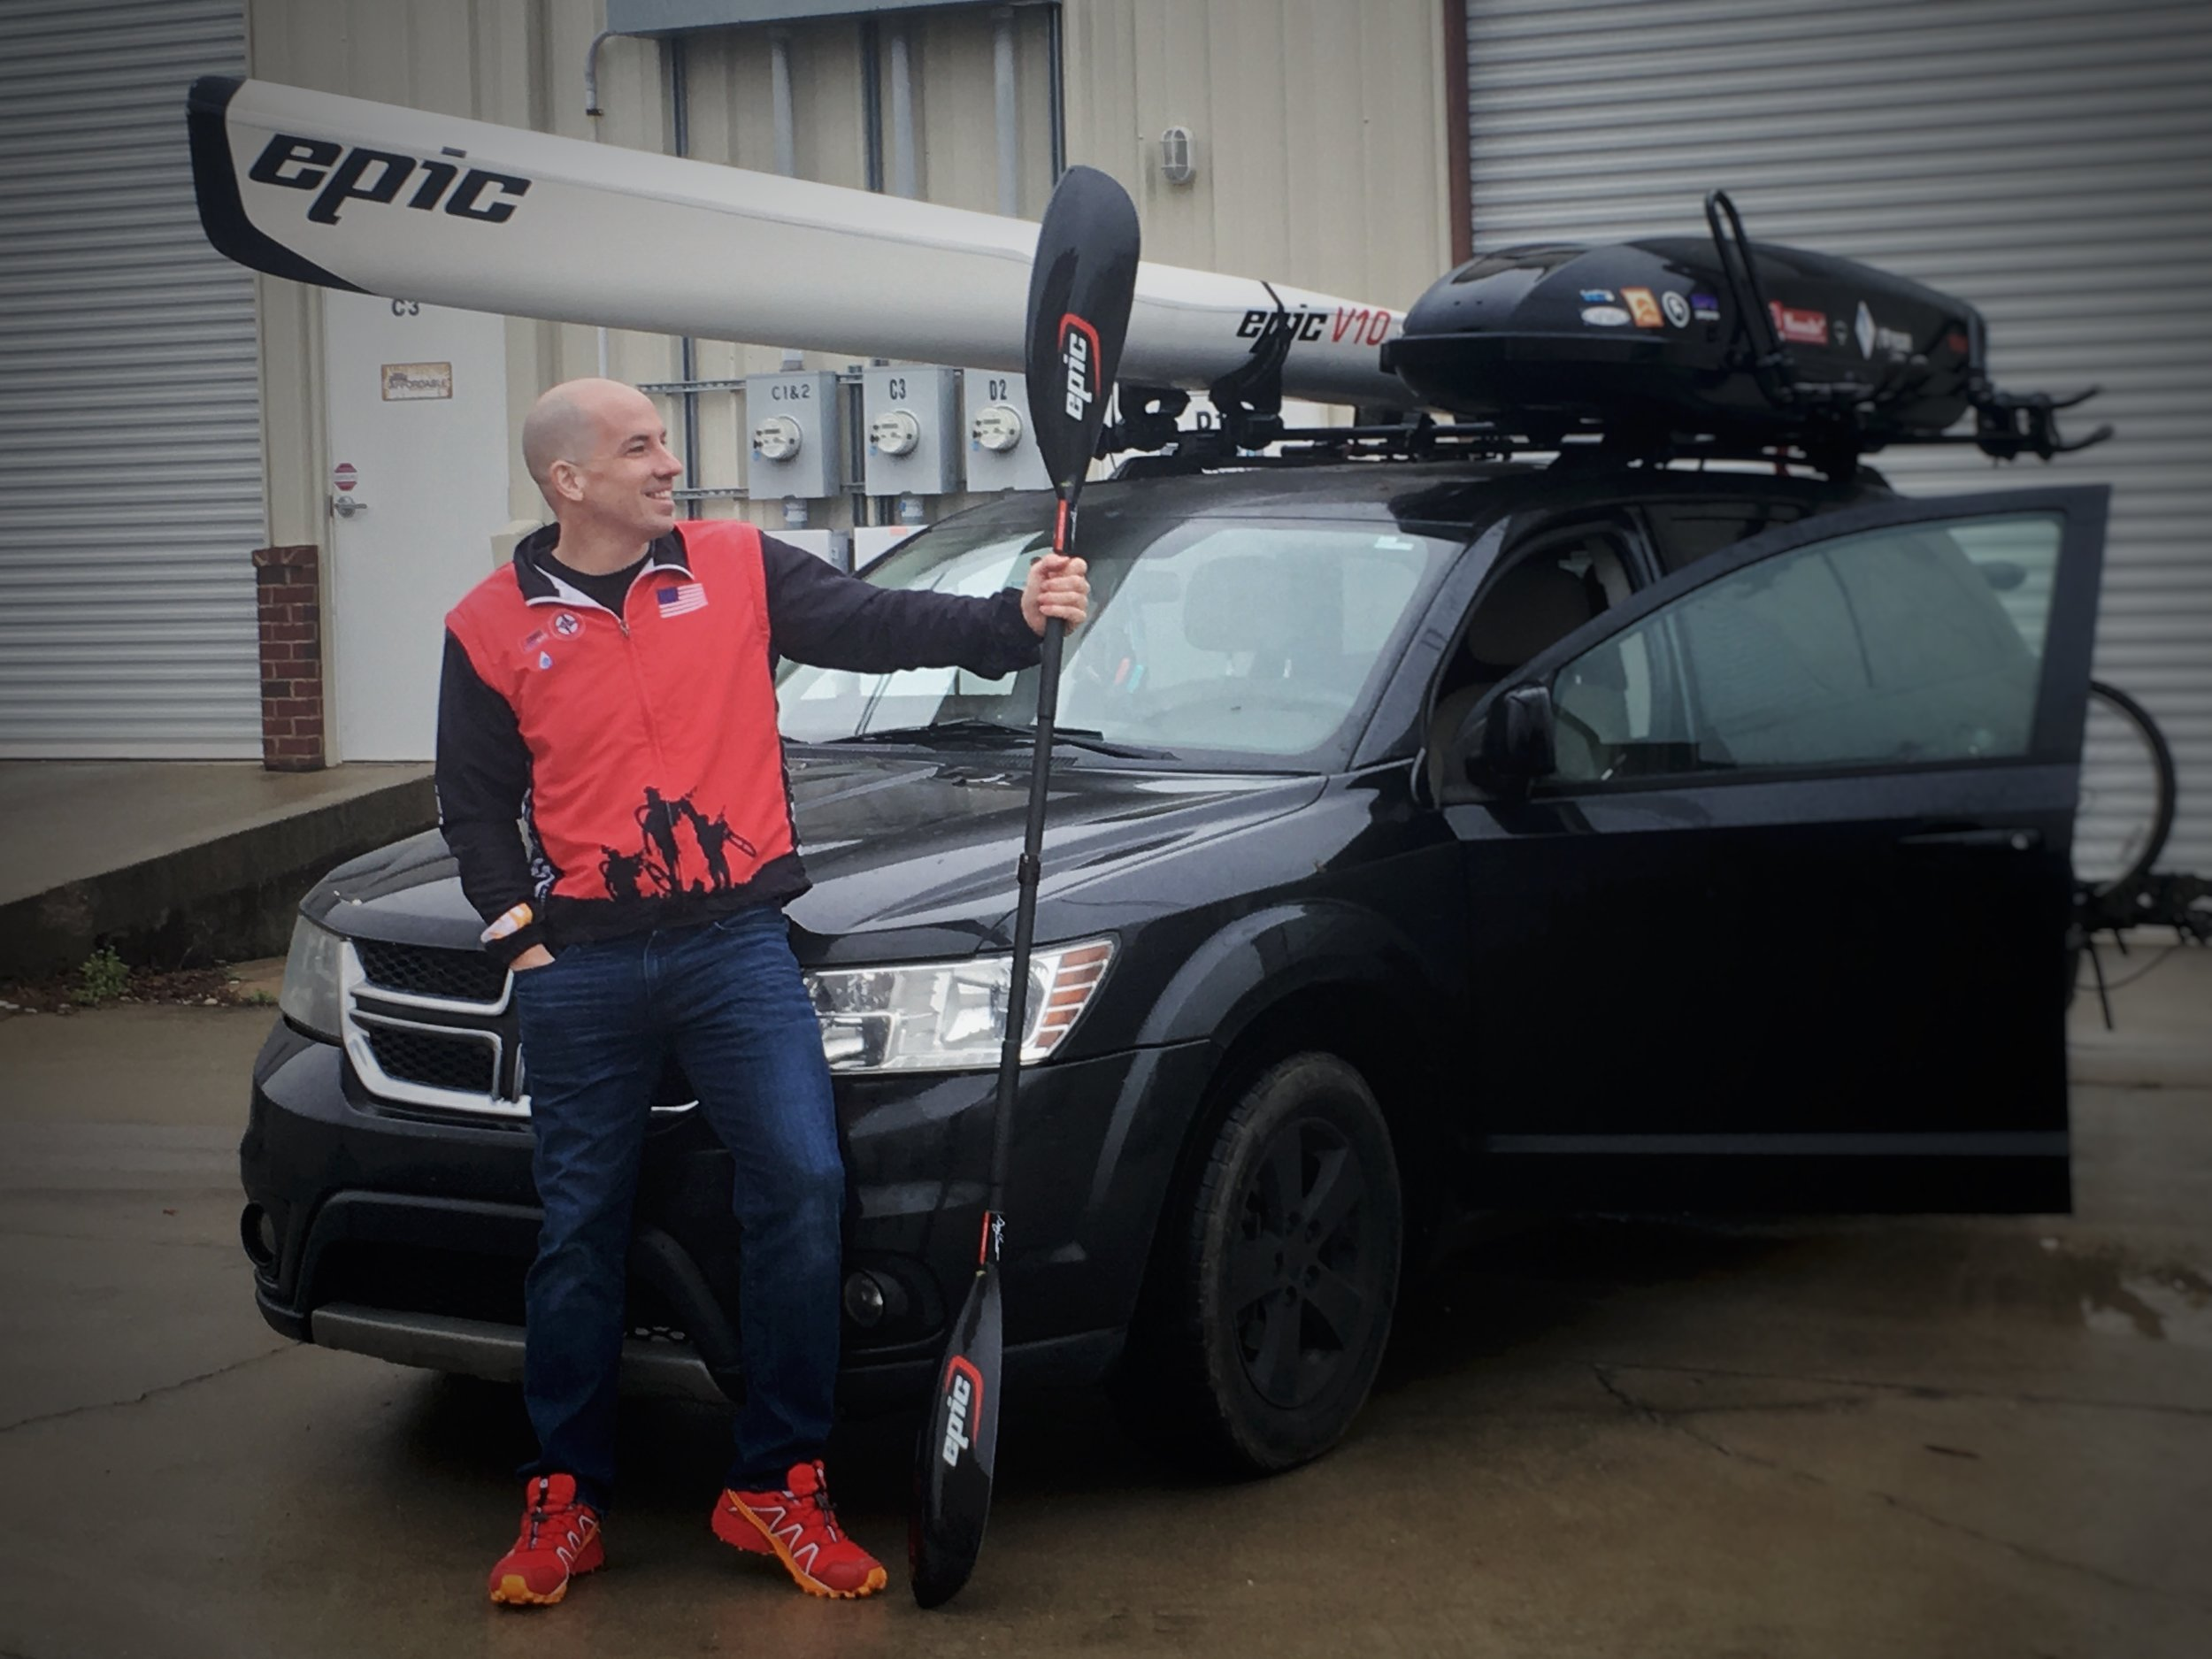 FORESTER COMPLETES RECORD-BREAKING TRIP AROUND LAKE ALLATOONA